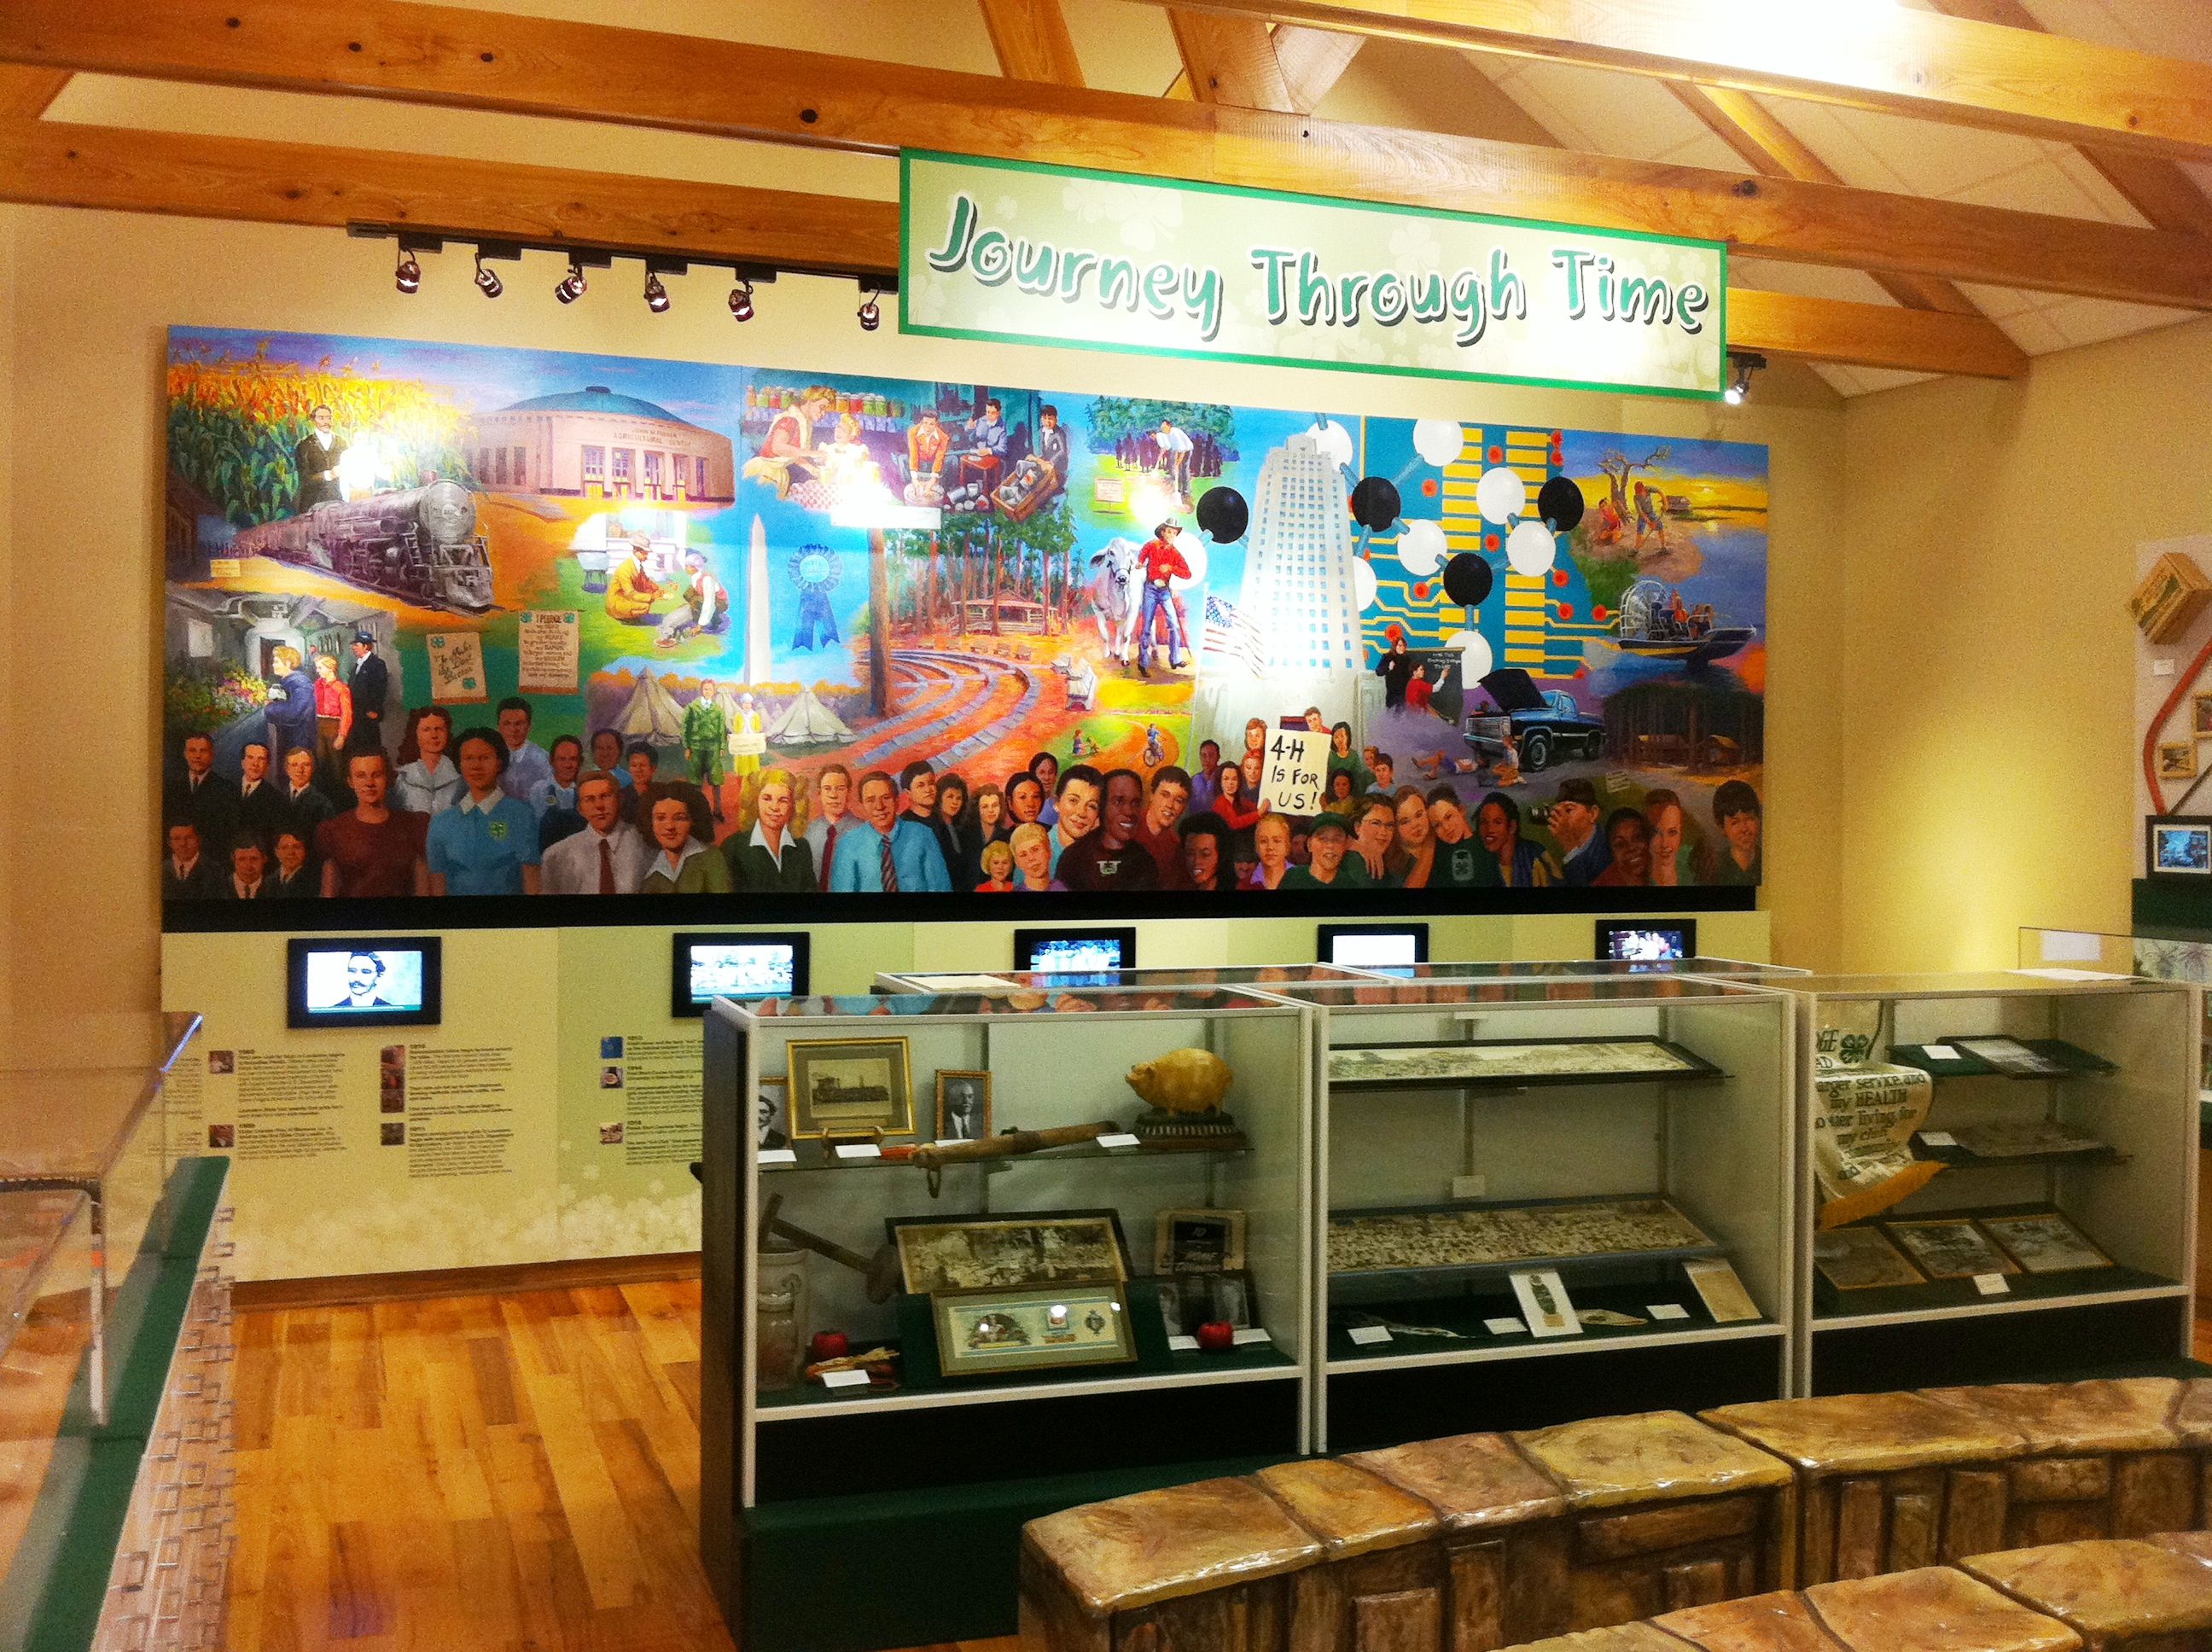 New Exhibit Enhancements Completed